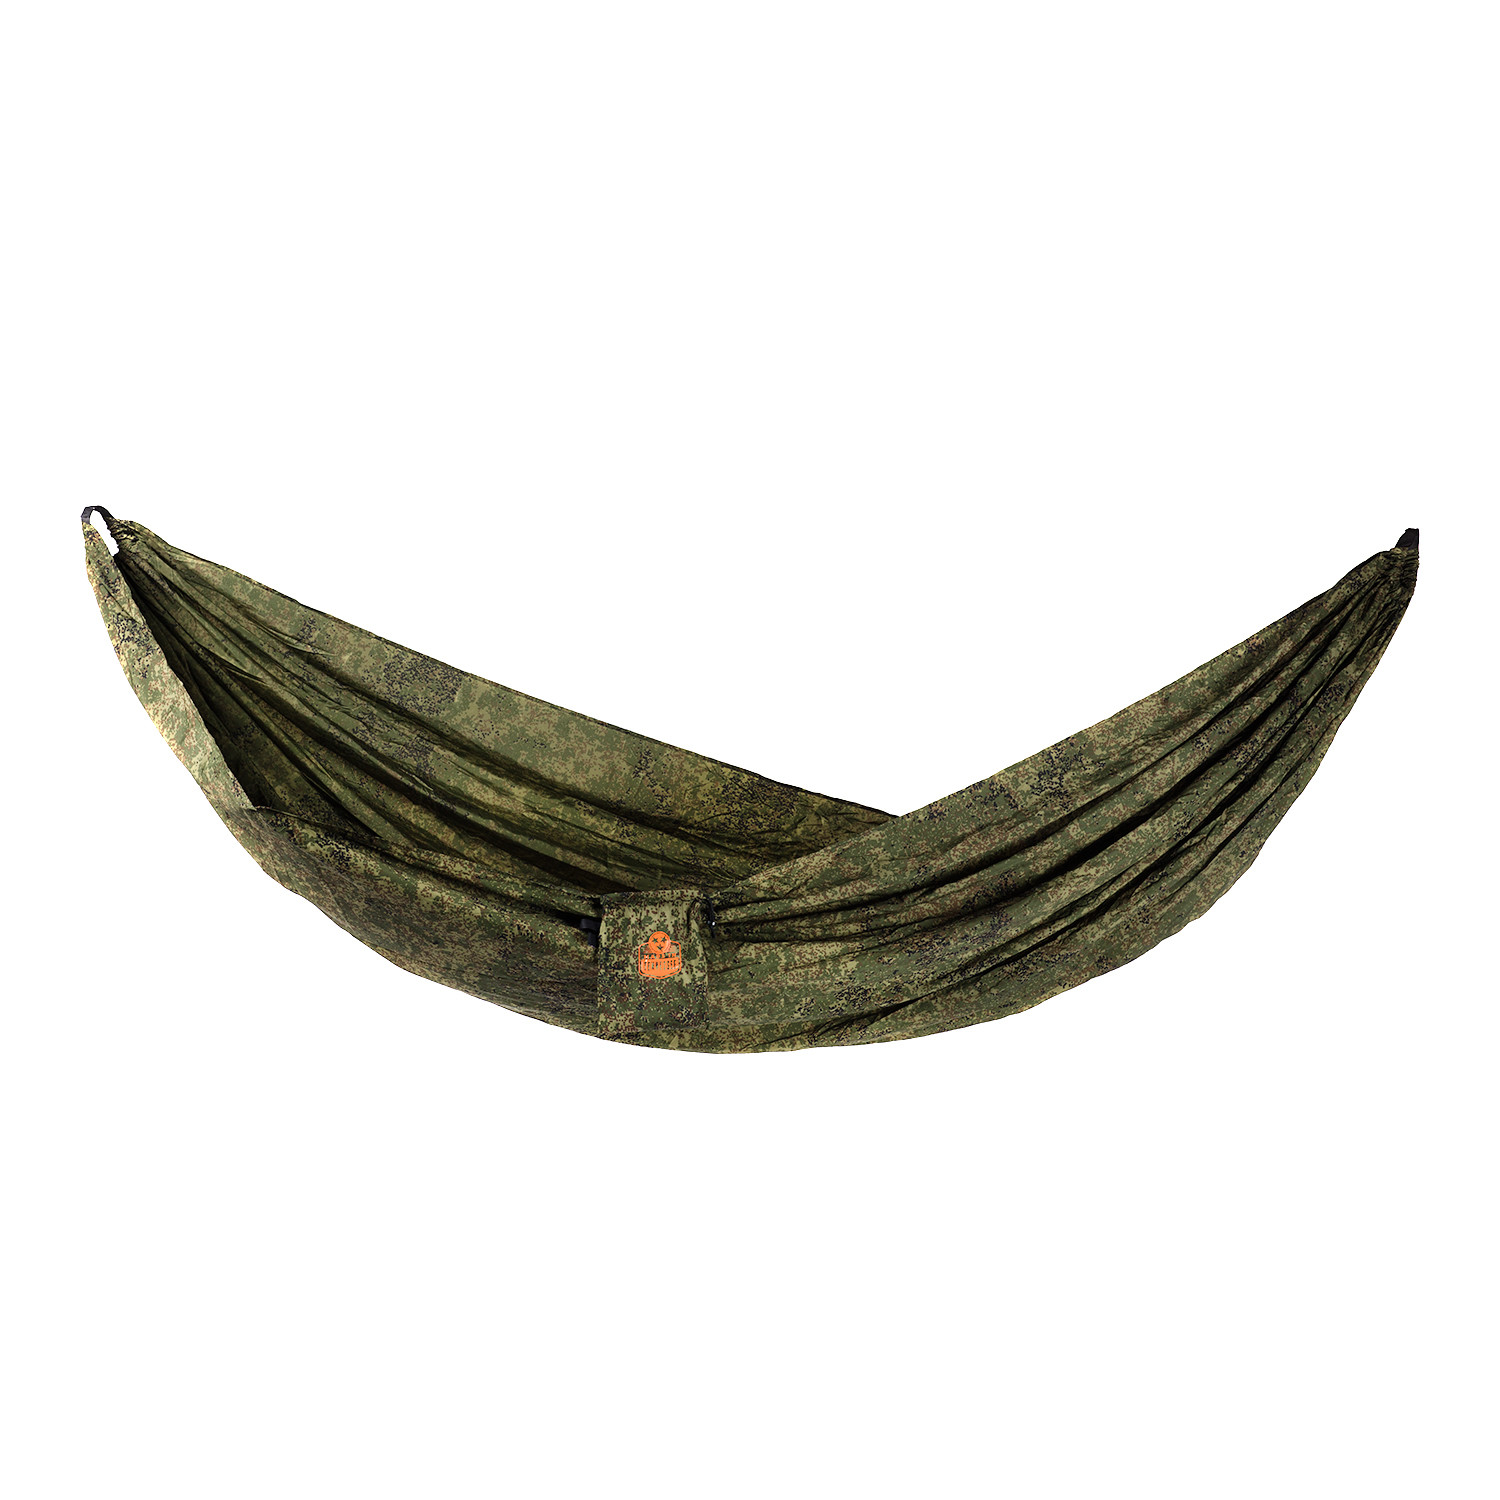 v2 ultra light camo hammock v2 ultra light camo hammock   yukon outfitters   touch of modern  rh   touchofmodern